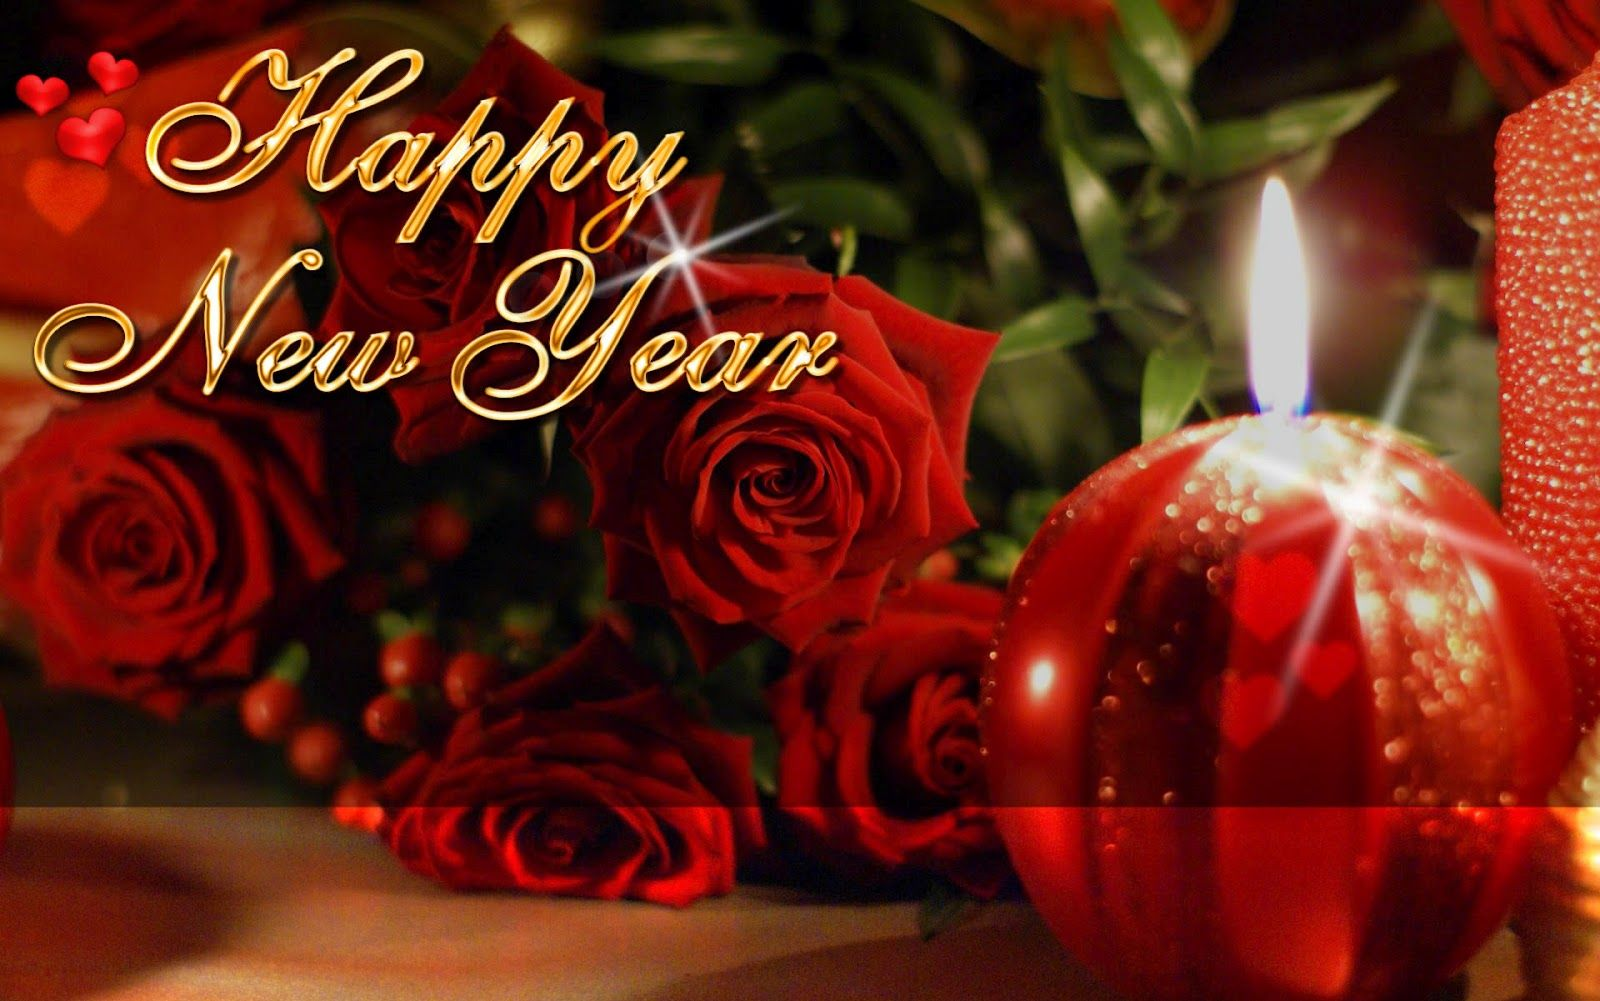 Happy new year wallpapers 2013 hd pictures 2013 wallpapers desktop happy new year wallpapers 2013 hd pictures 2013 wallpapers desktop backgrounds download m4hsunfo